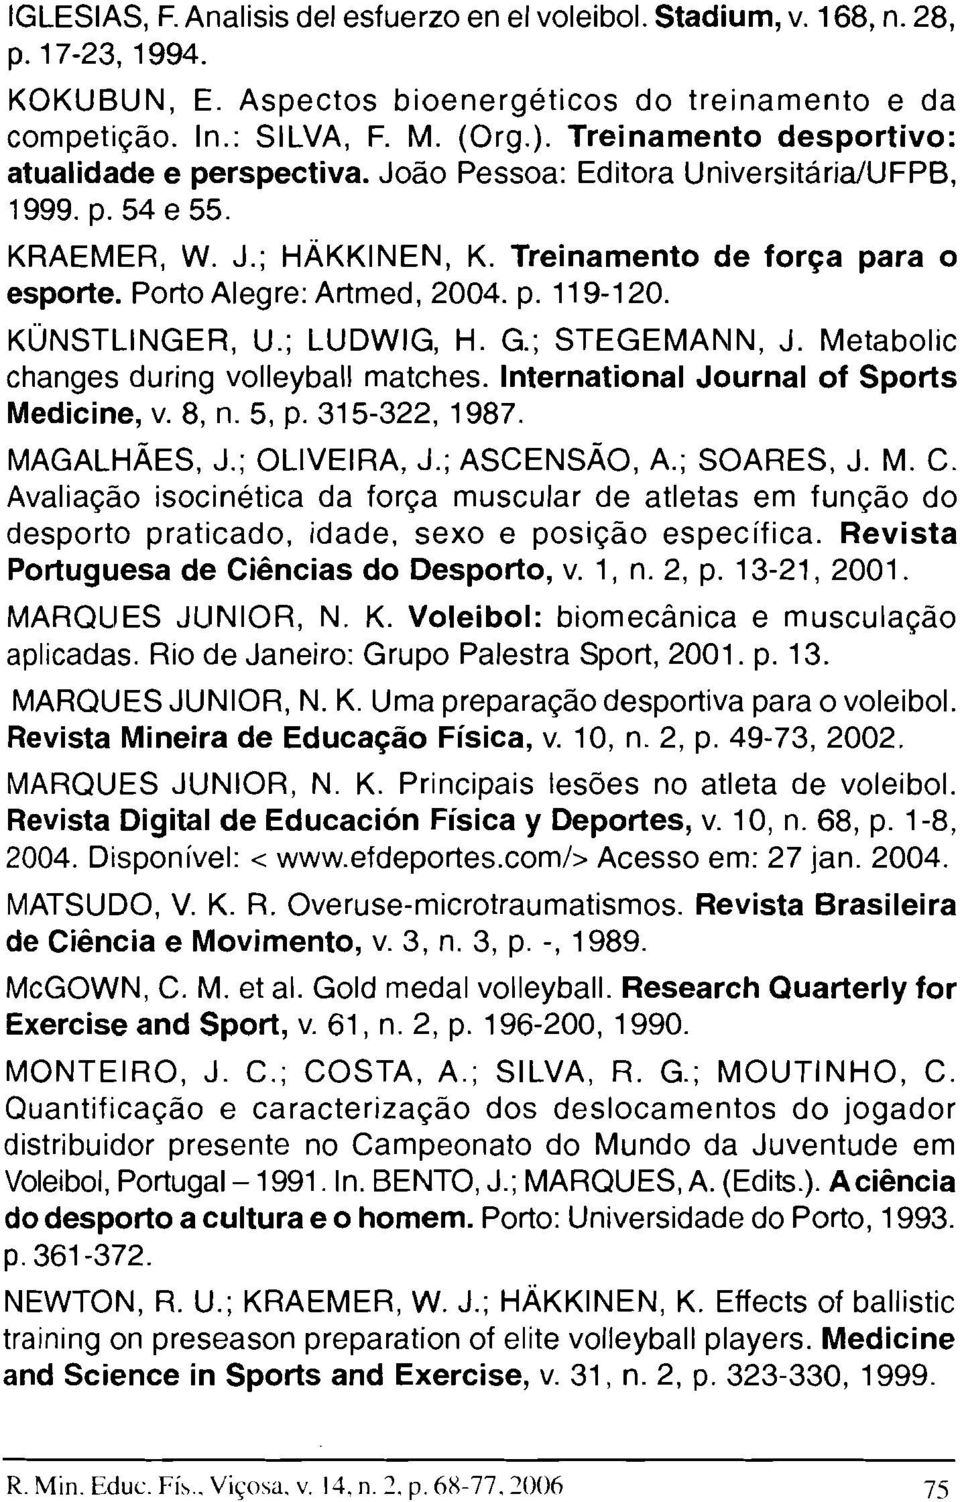 Porto Alegre: Artmed, 2004. p. 119-120. KÜNSTLlNGER, U.; LUDWIG, H. G.; STEGEMAI\IN, J. Metabolic changes during volleyball matches. International Journal of Sports Medicine, v. 8, n. 5, p.